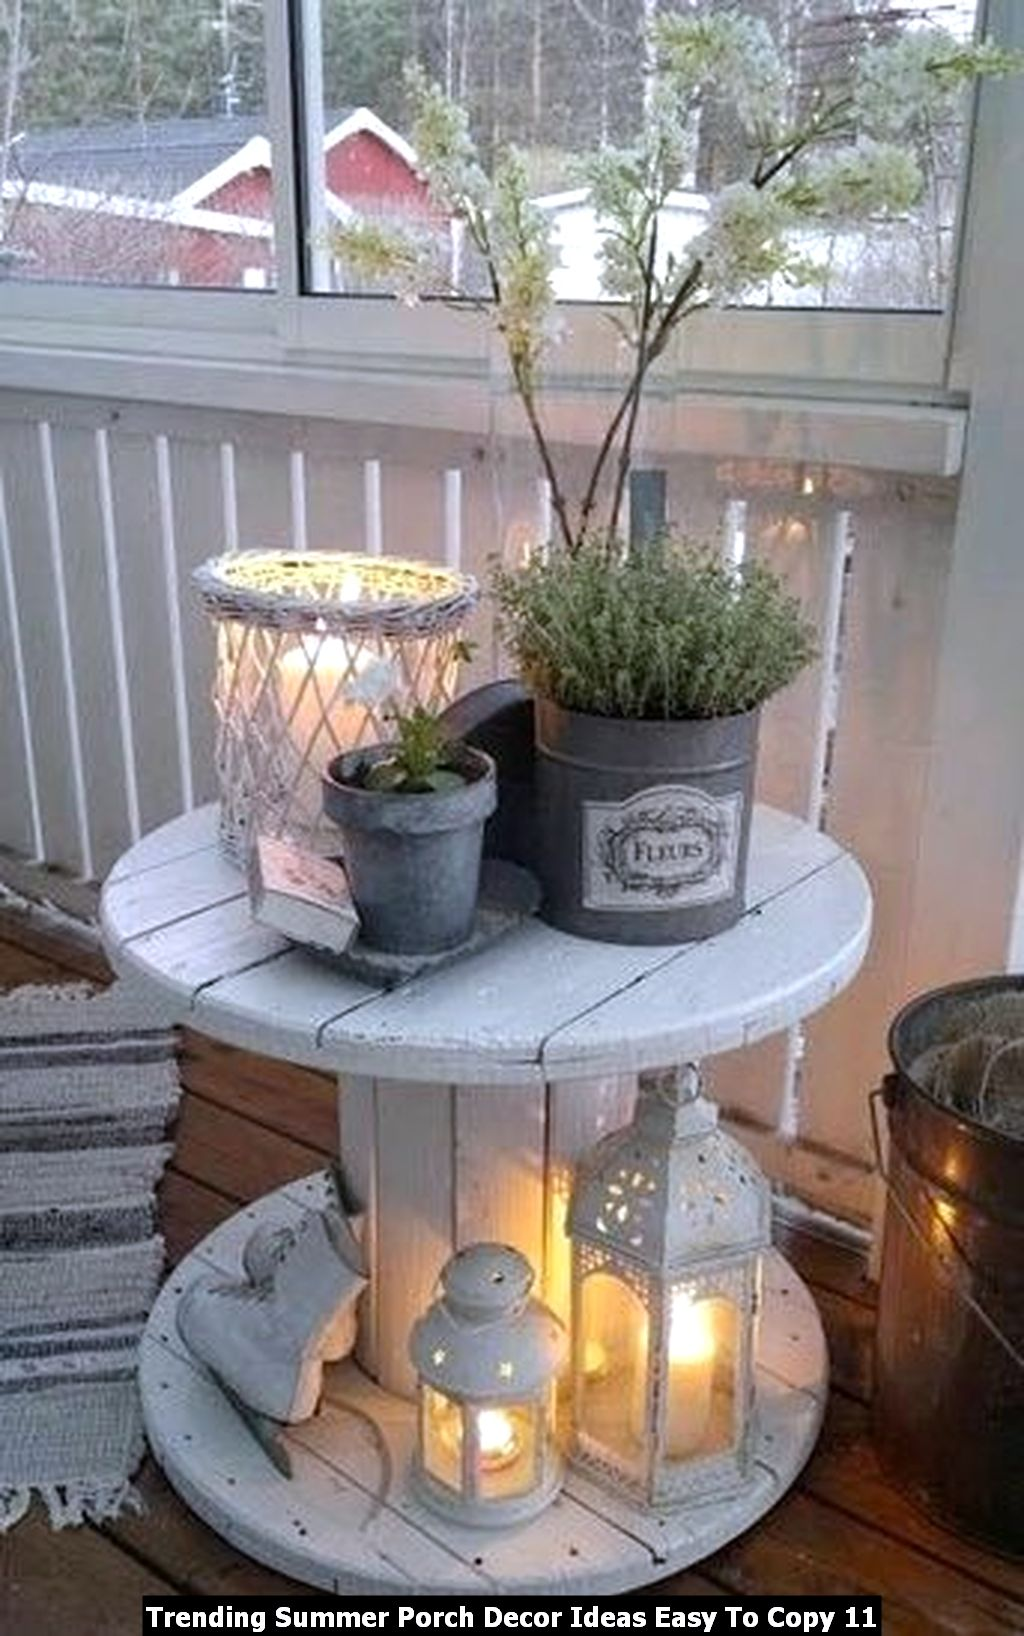 Trending Summer Porch Decor Ideas Easy To Copy 11